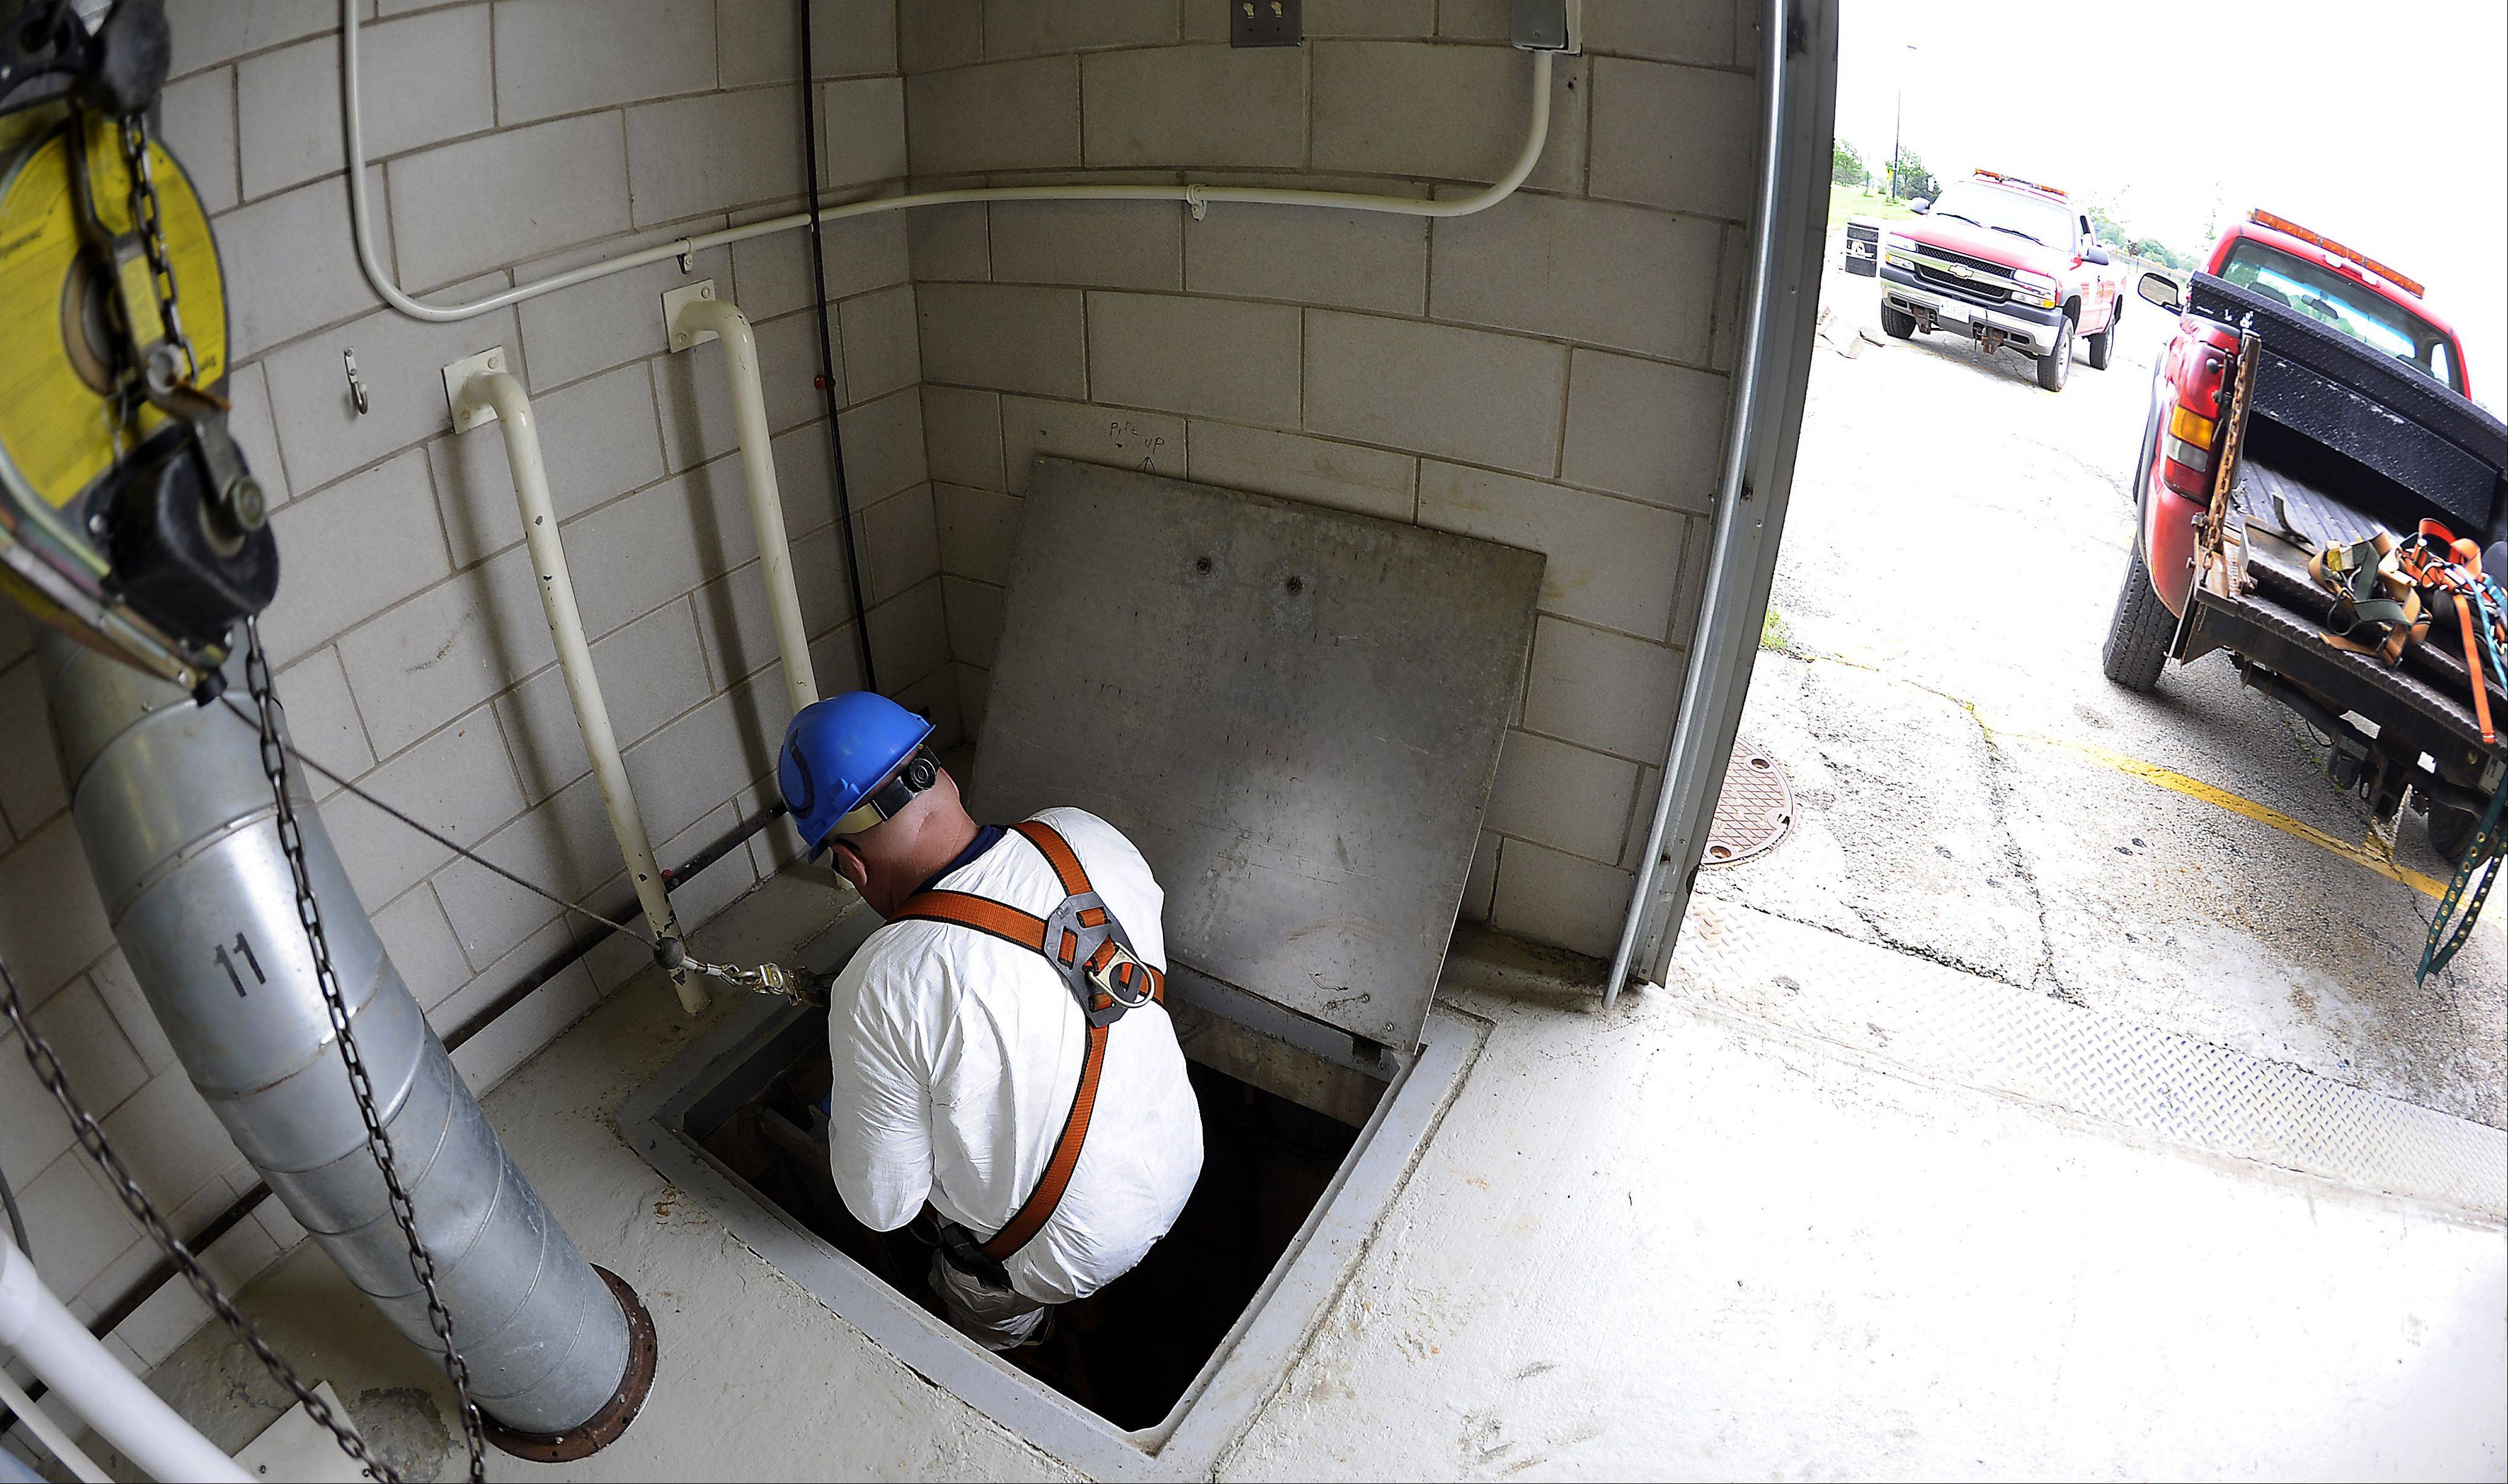 McNamara climbs down almost 40 feet underground into the storm water station.